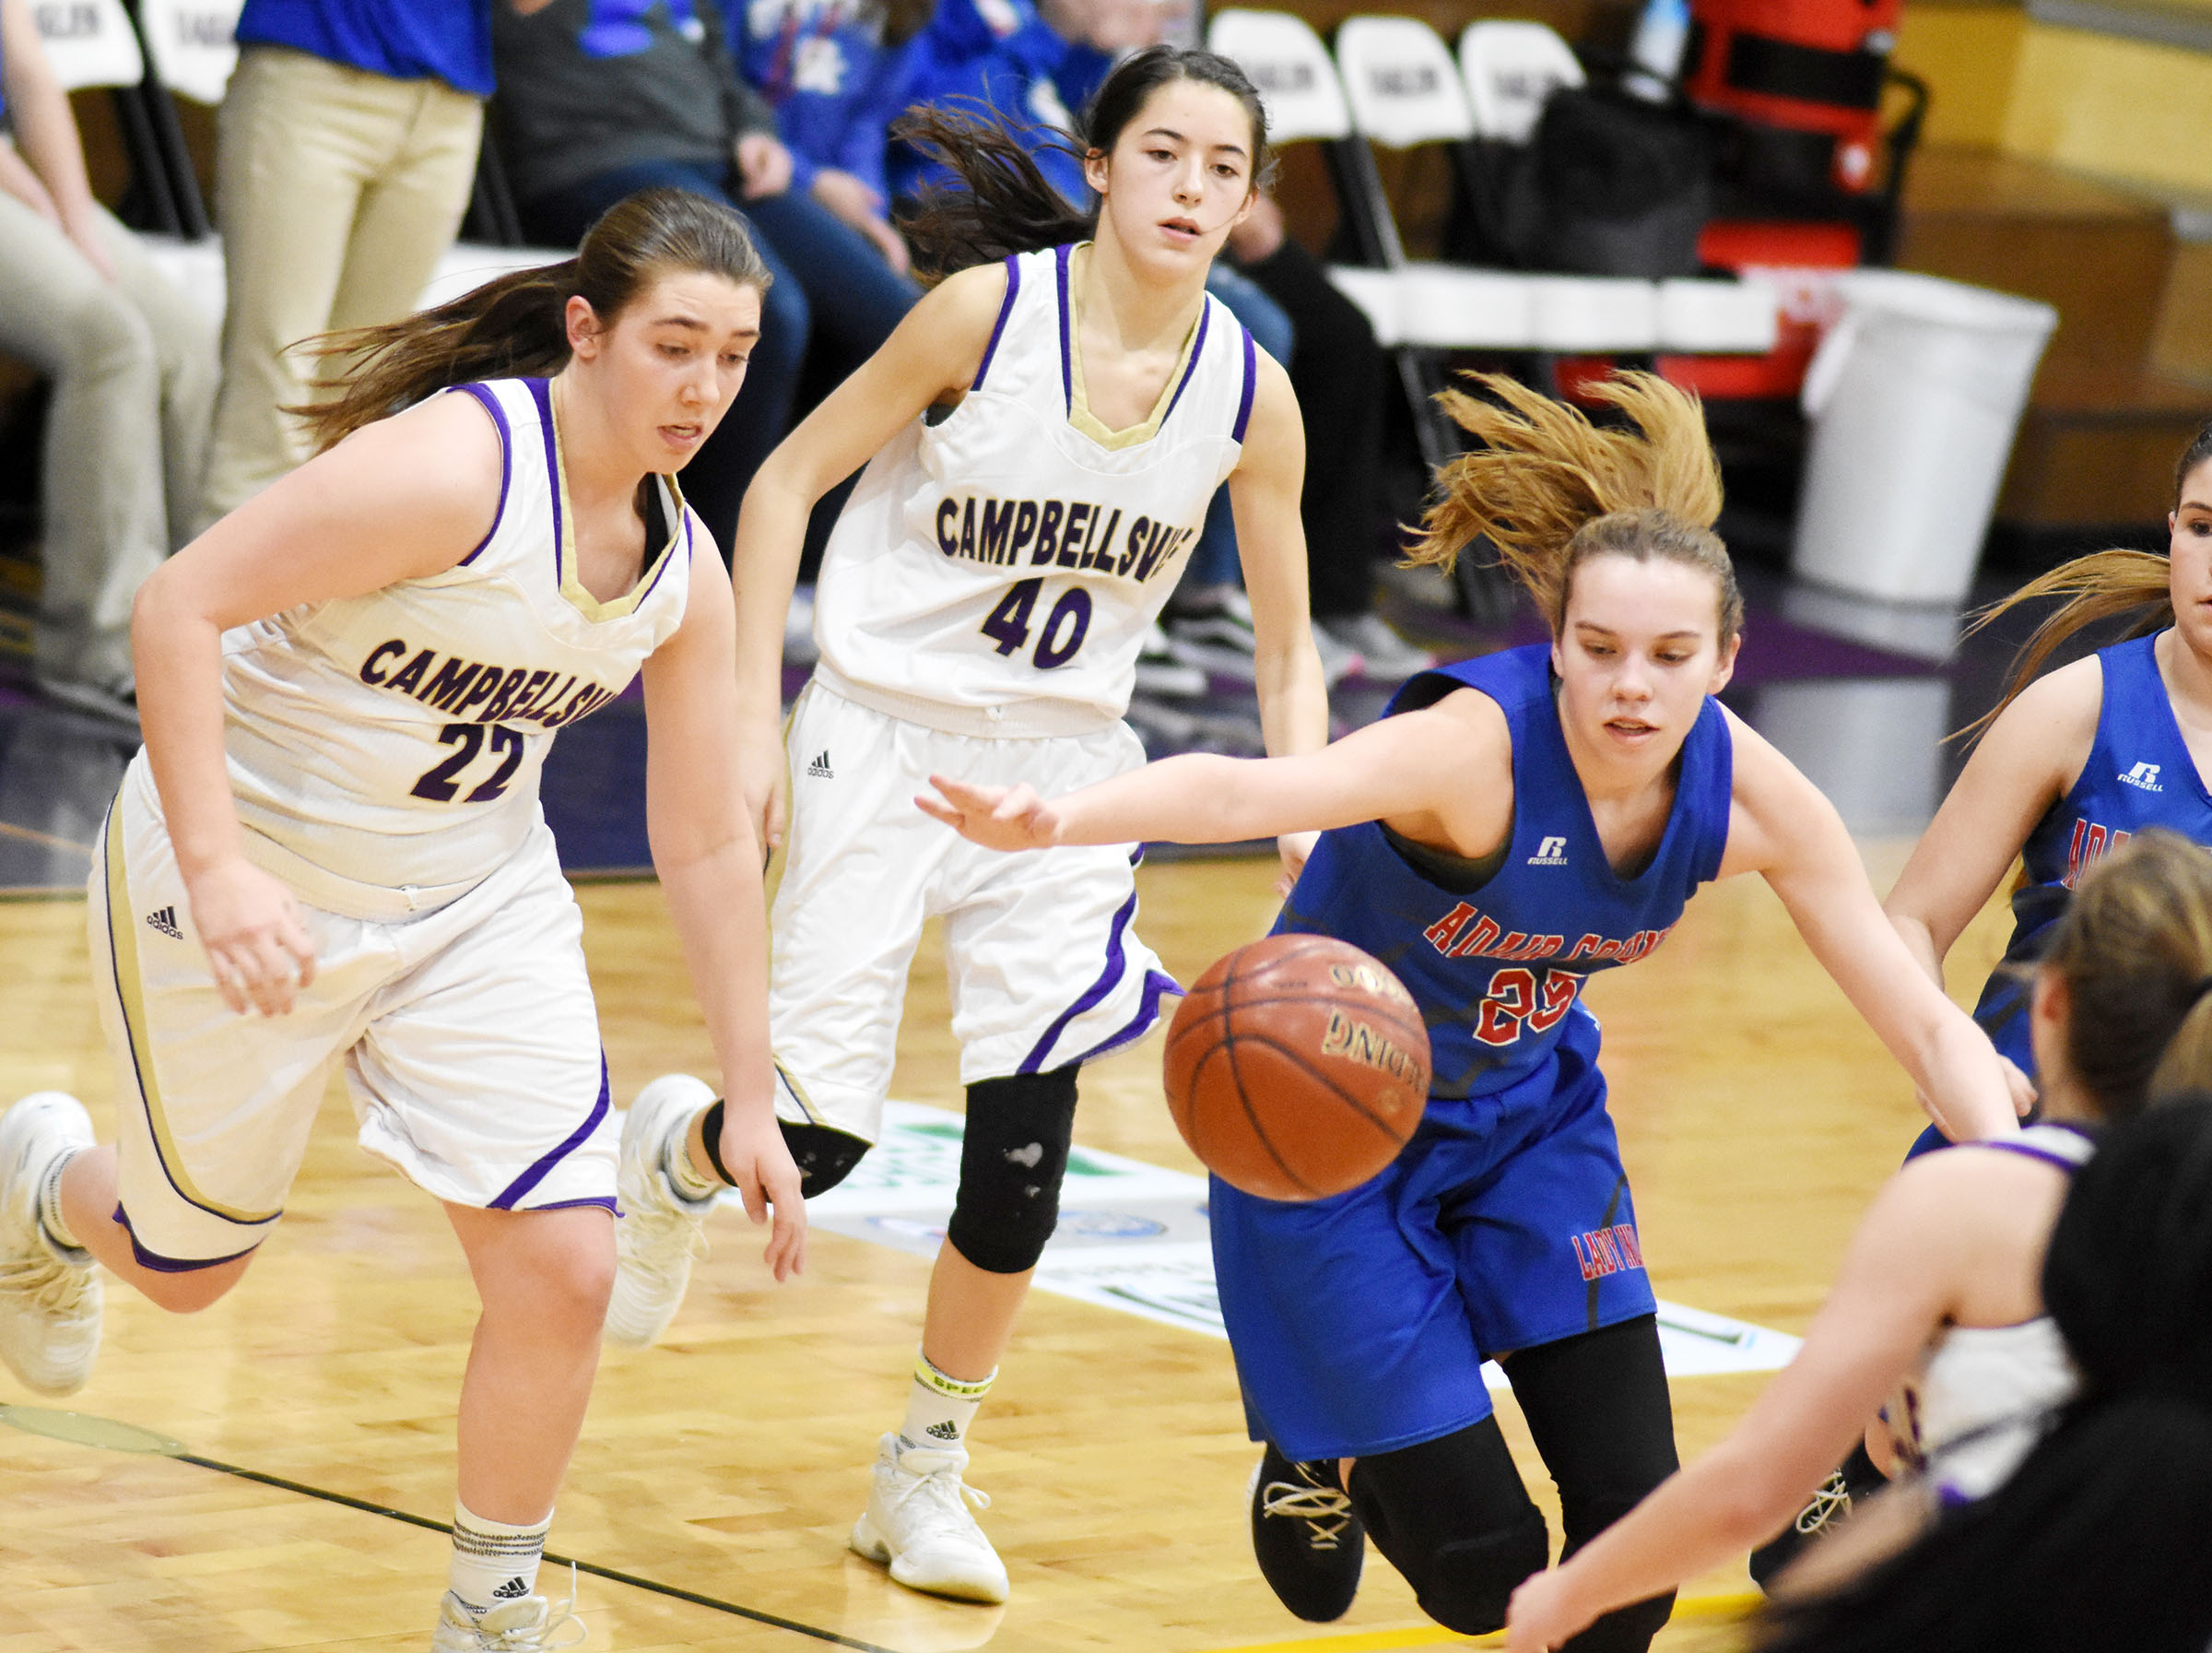 CHS freshman Abi Wiedewitsch, at left, and Campbellsville Middle School eighth-grader Kaylyn Smith battle for the ball.